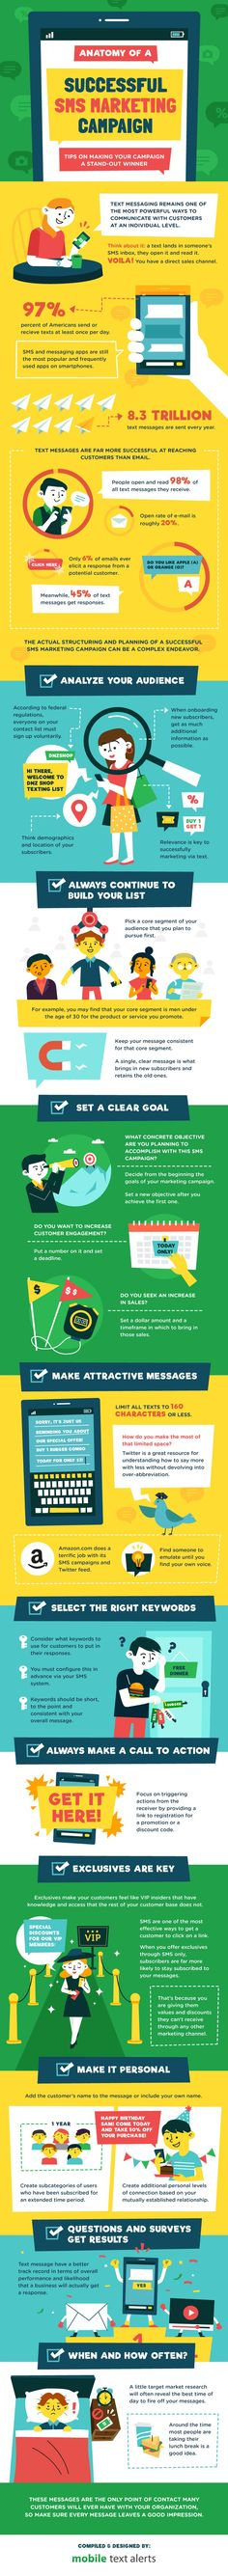 How To Use SMS Text Message Marketing for Your Small Business (Infographic)